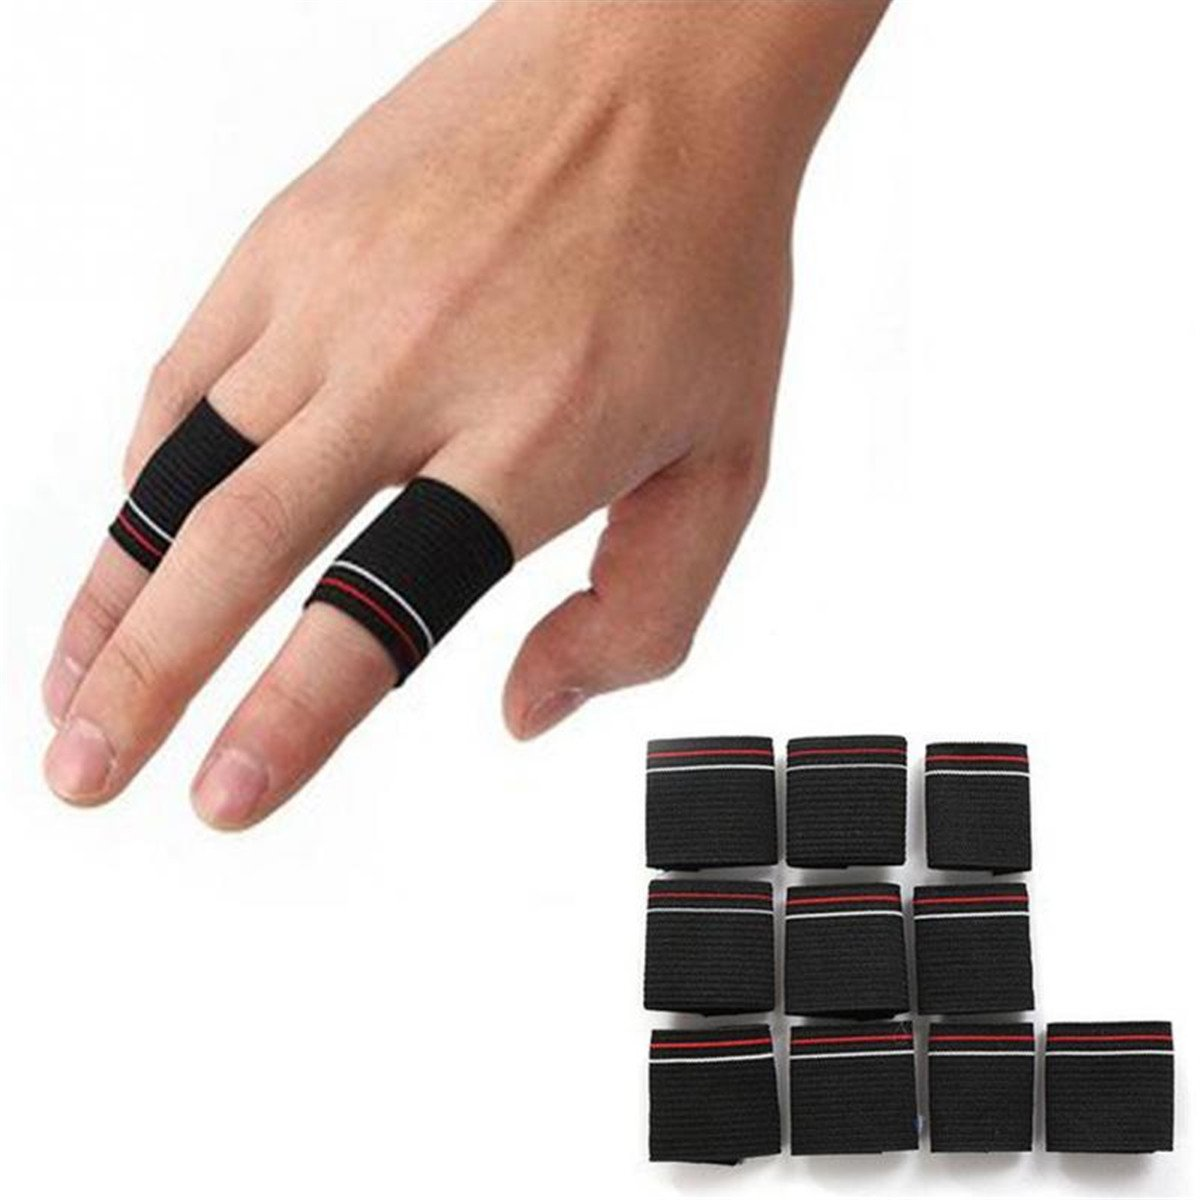 Pack of 10 Grofitness Stripe Finger Sleeves Basketball Volleyball Thumb Protector Weightlifting Exercise Finger Guard